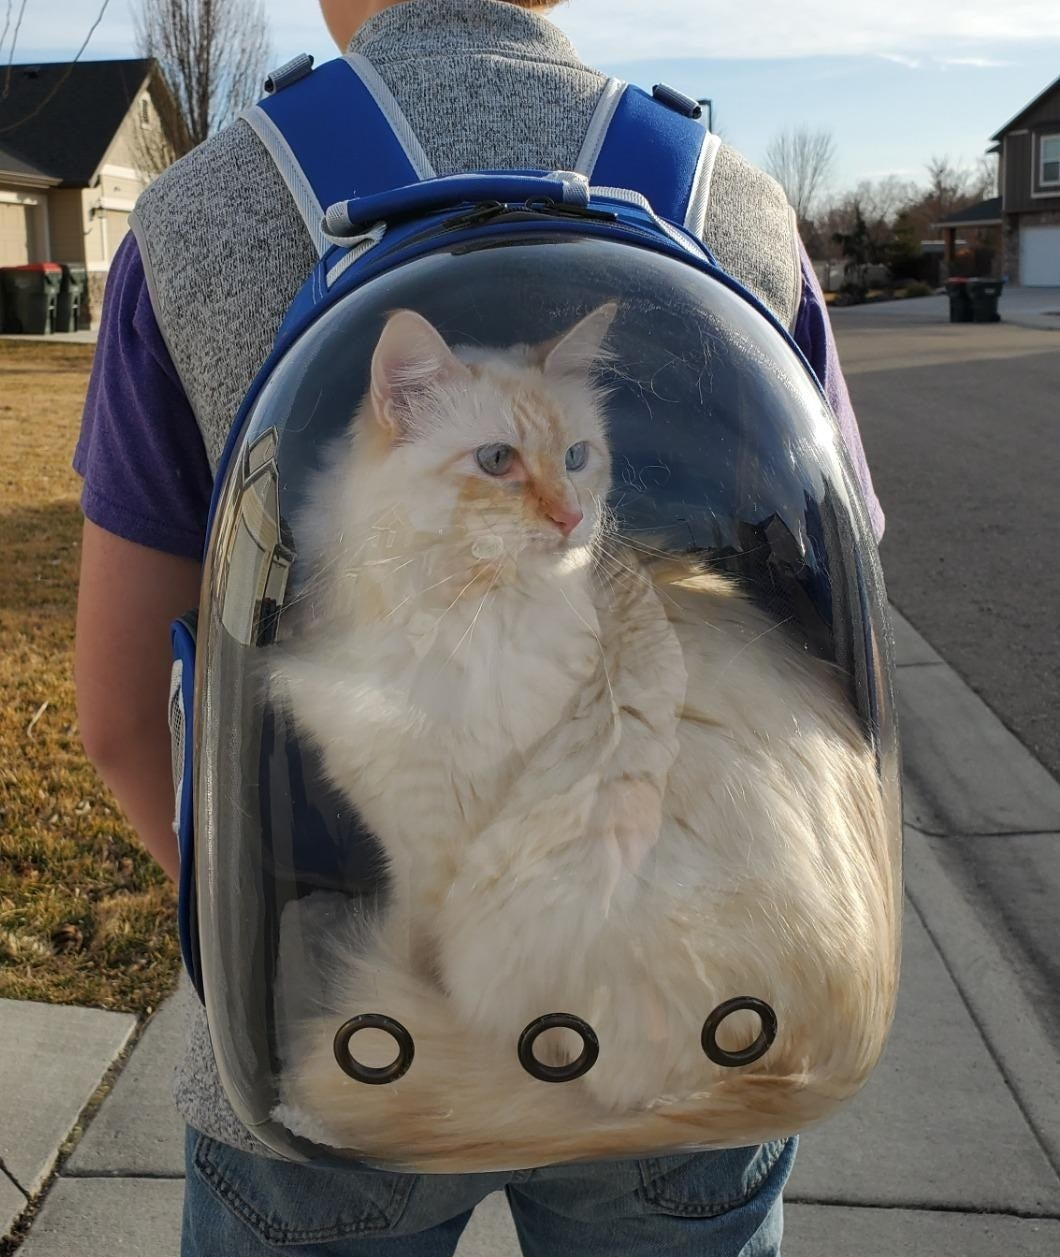 Fluffy white cat in the clear backpack